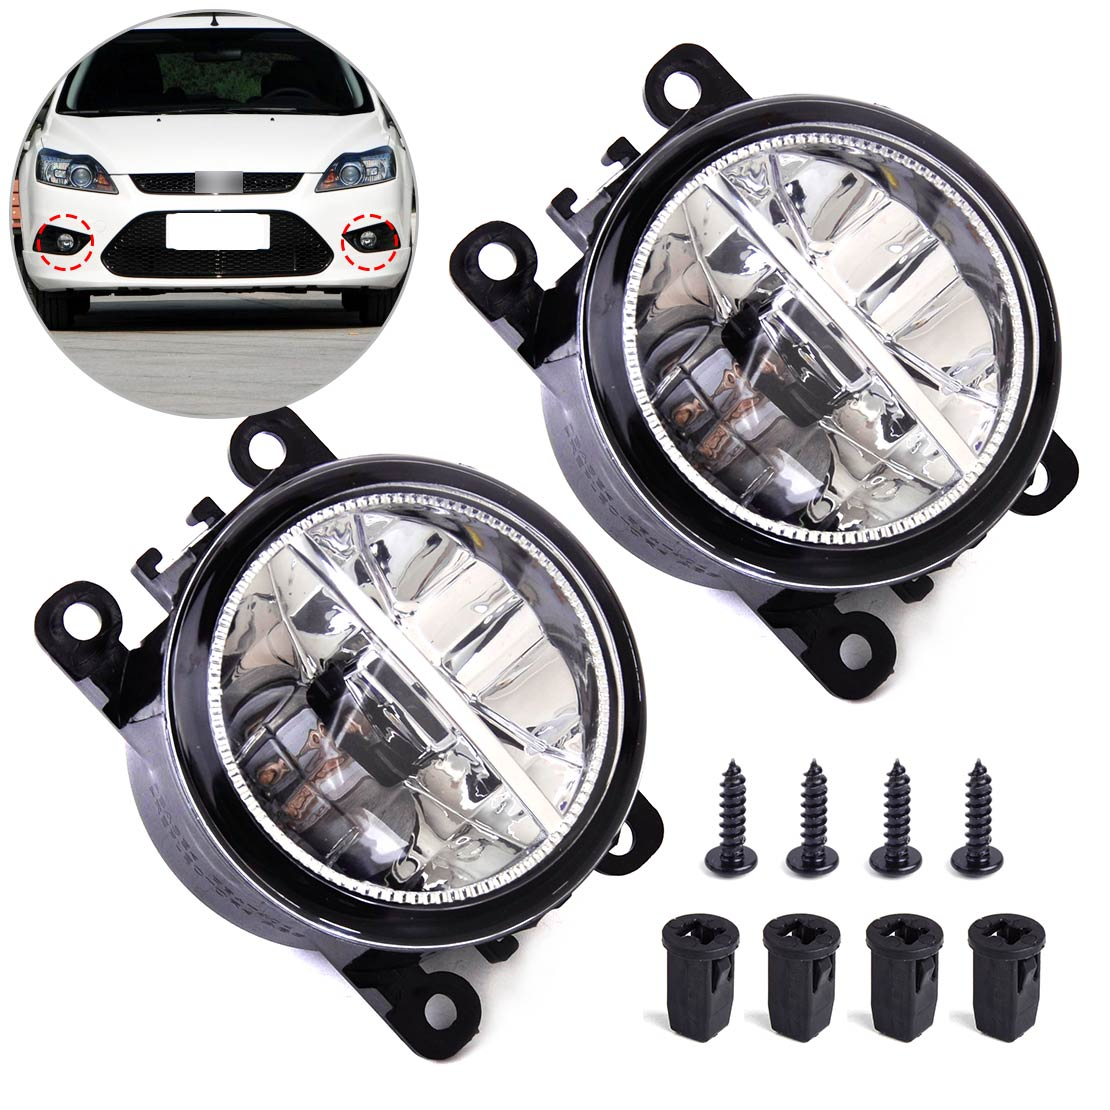 2x Right Left LED Fog Light Lamp AC2592111 4F9Z15200AA 33900STKA11 Fit For Ford Focus Honda Acura